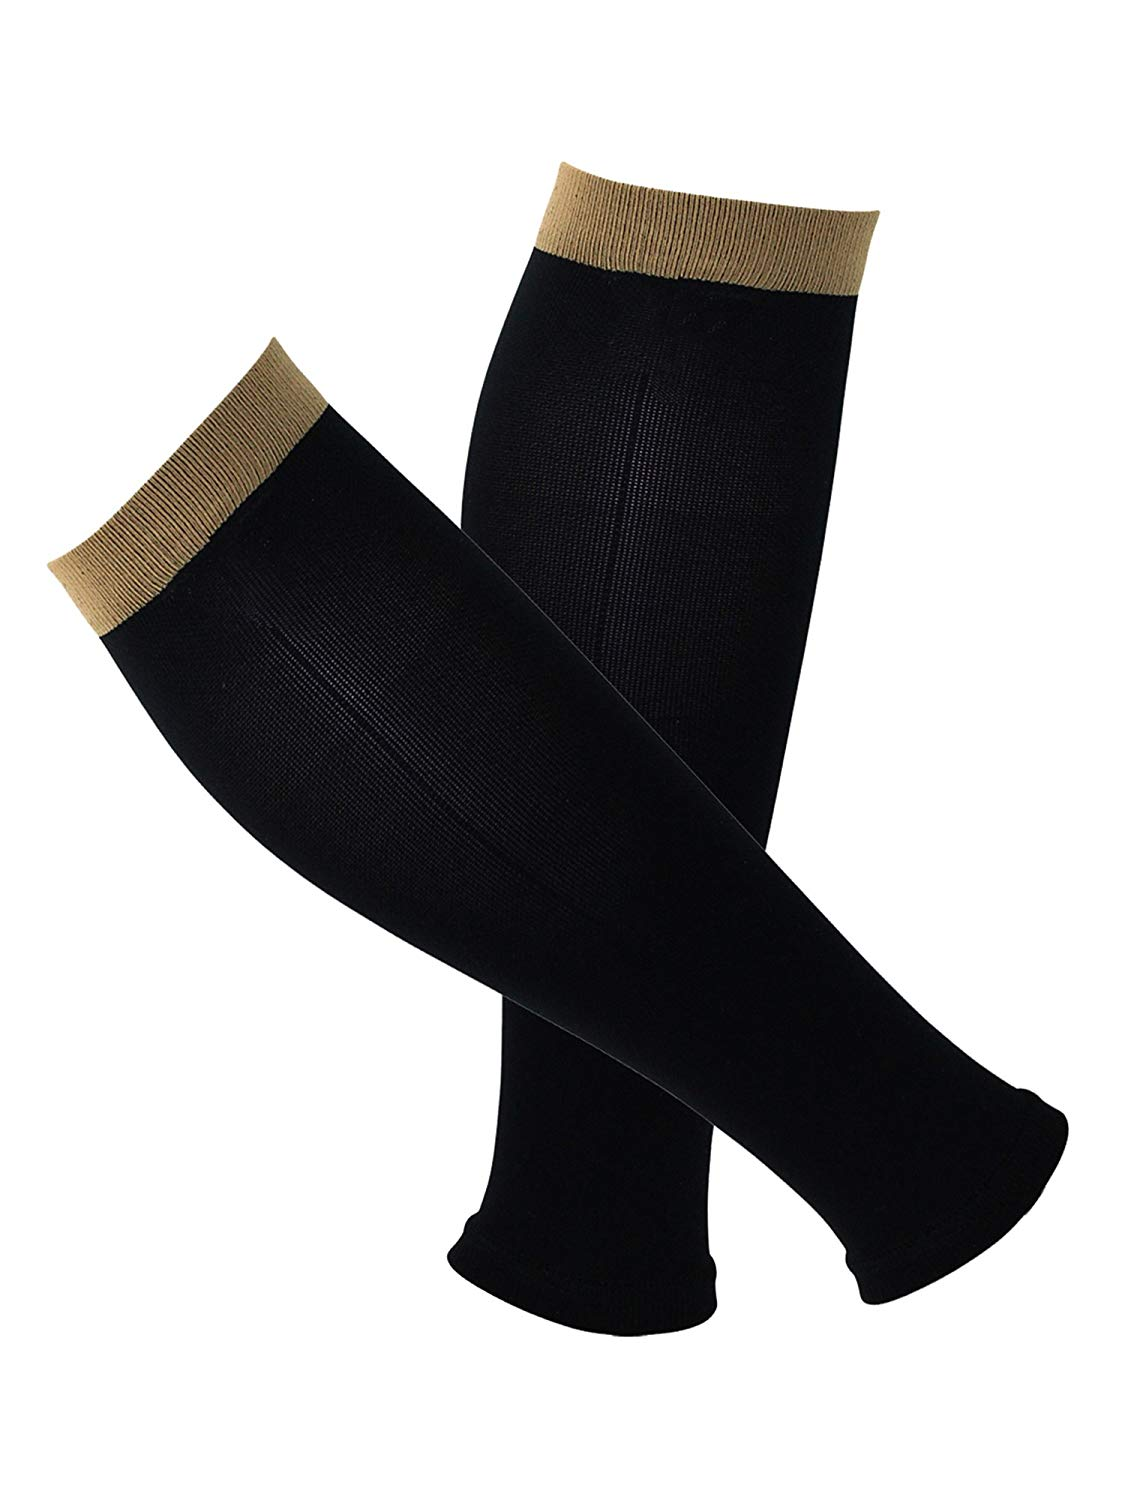 9592911ca Get Quotations · Copper Compression Recovery Calf   Shin Splint Leg Sleeves